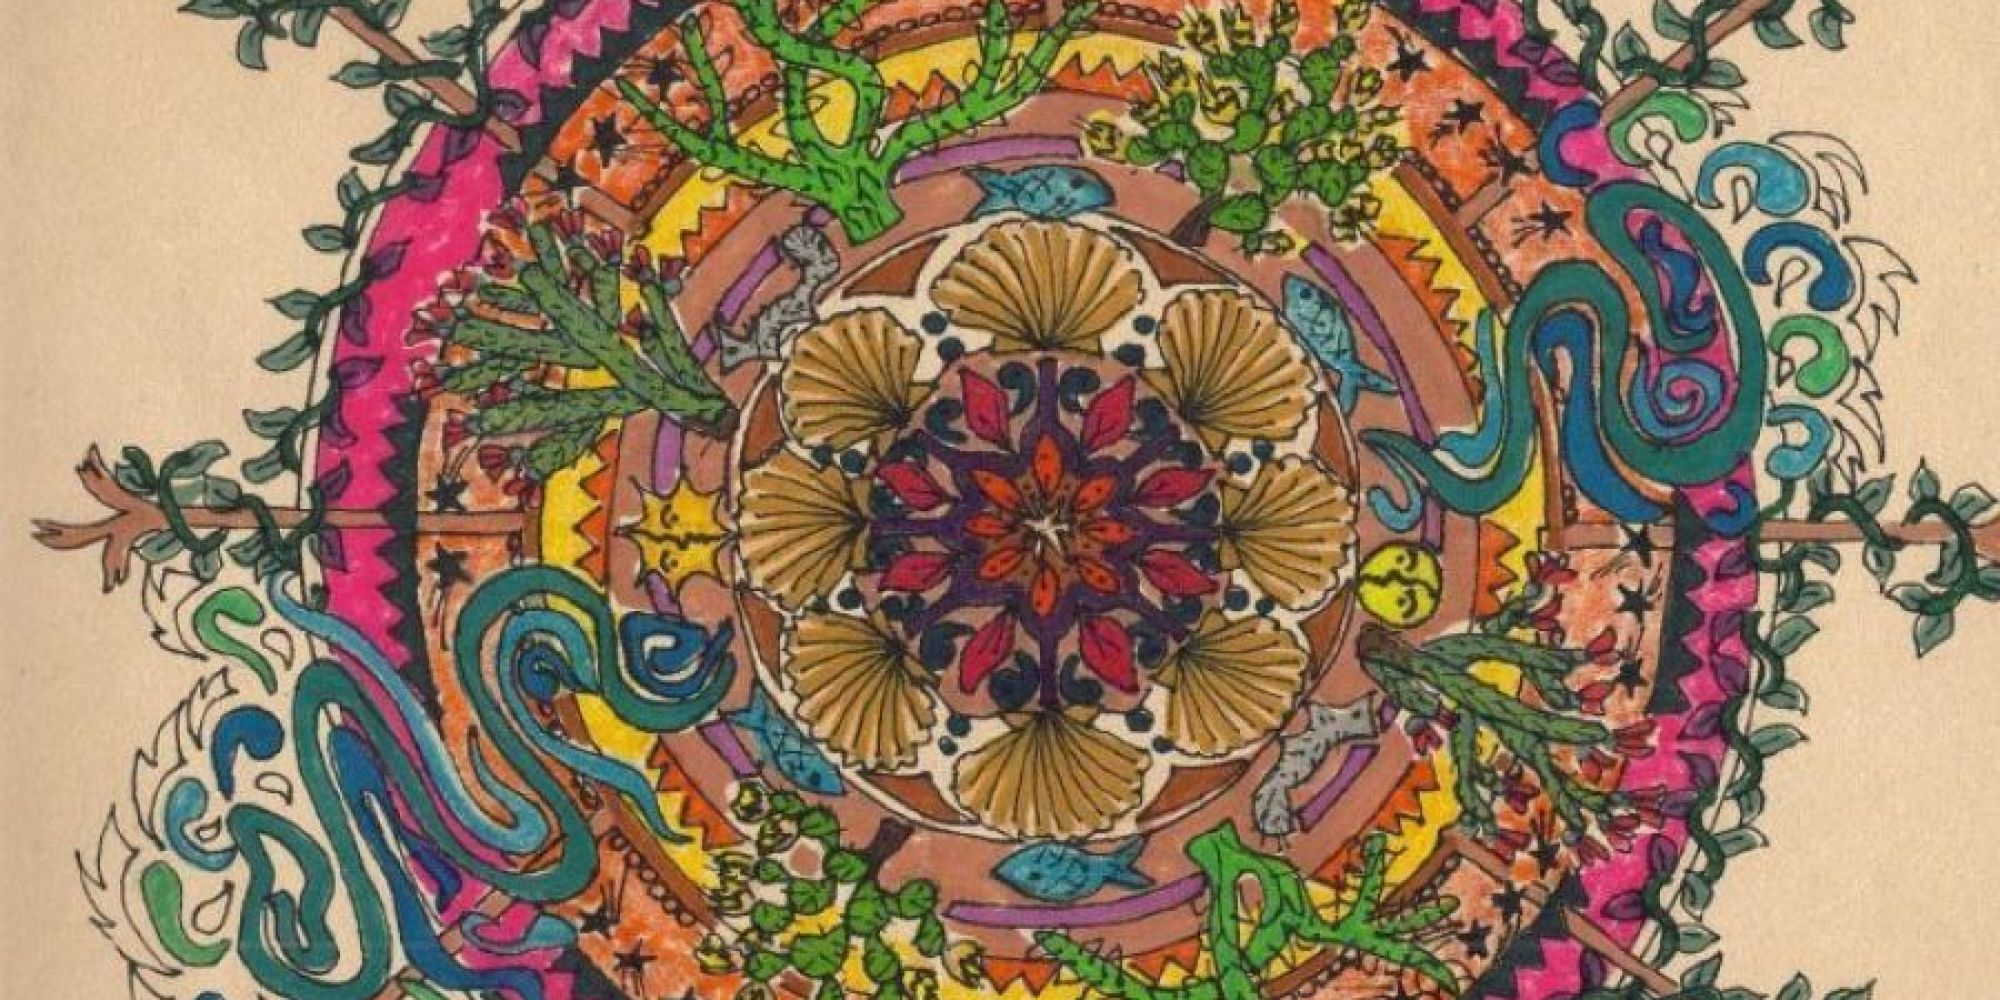 Libro Para Colorear Mandala Coloring Isn't Just For Kids. It Can Actually Help Adults